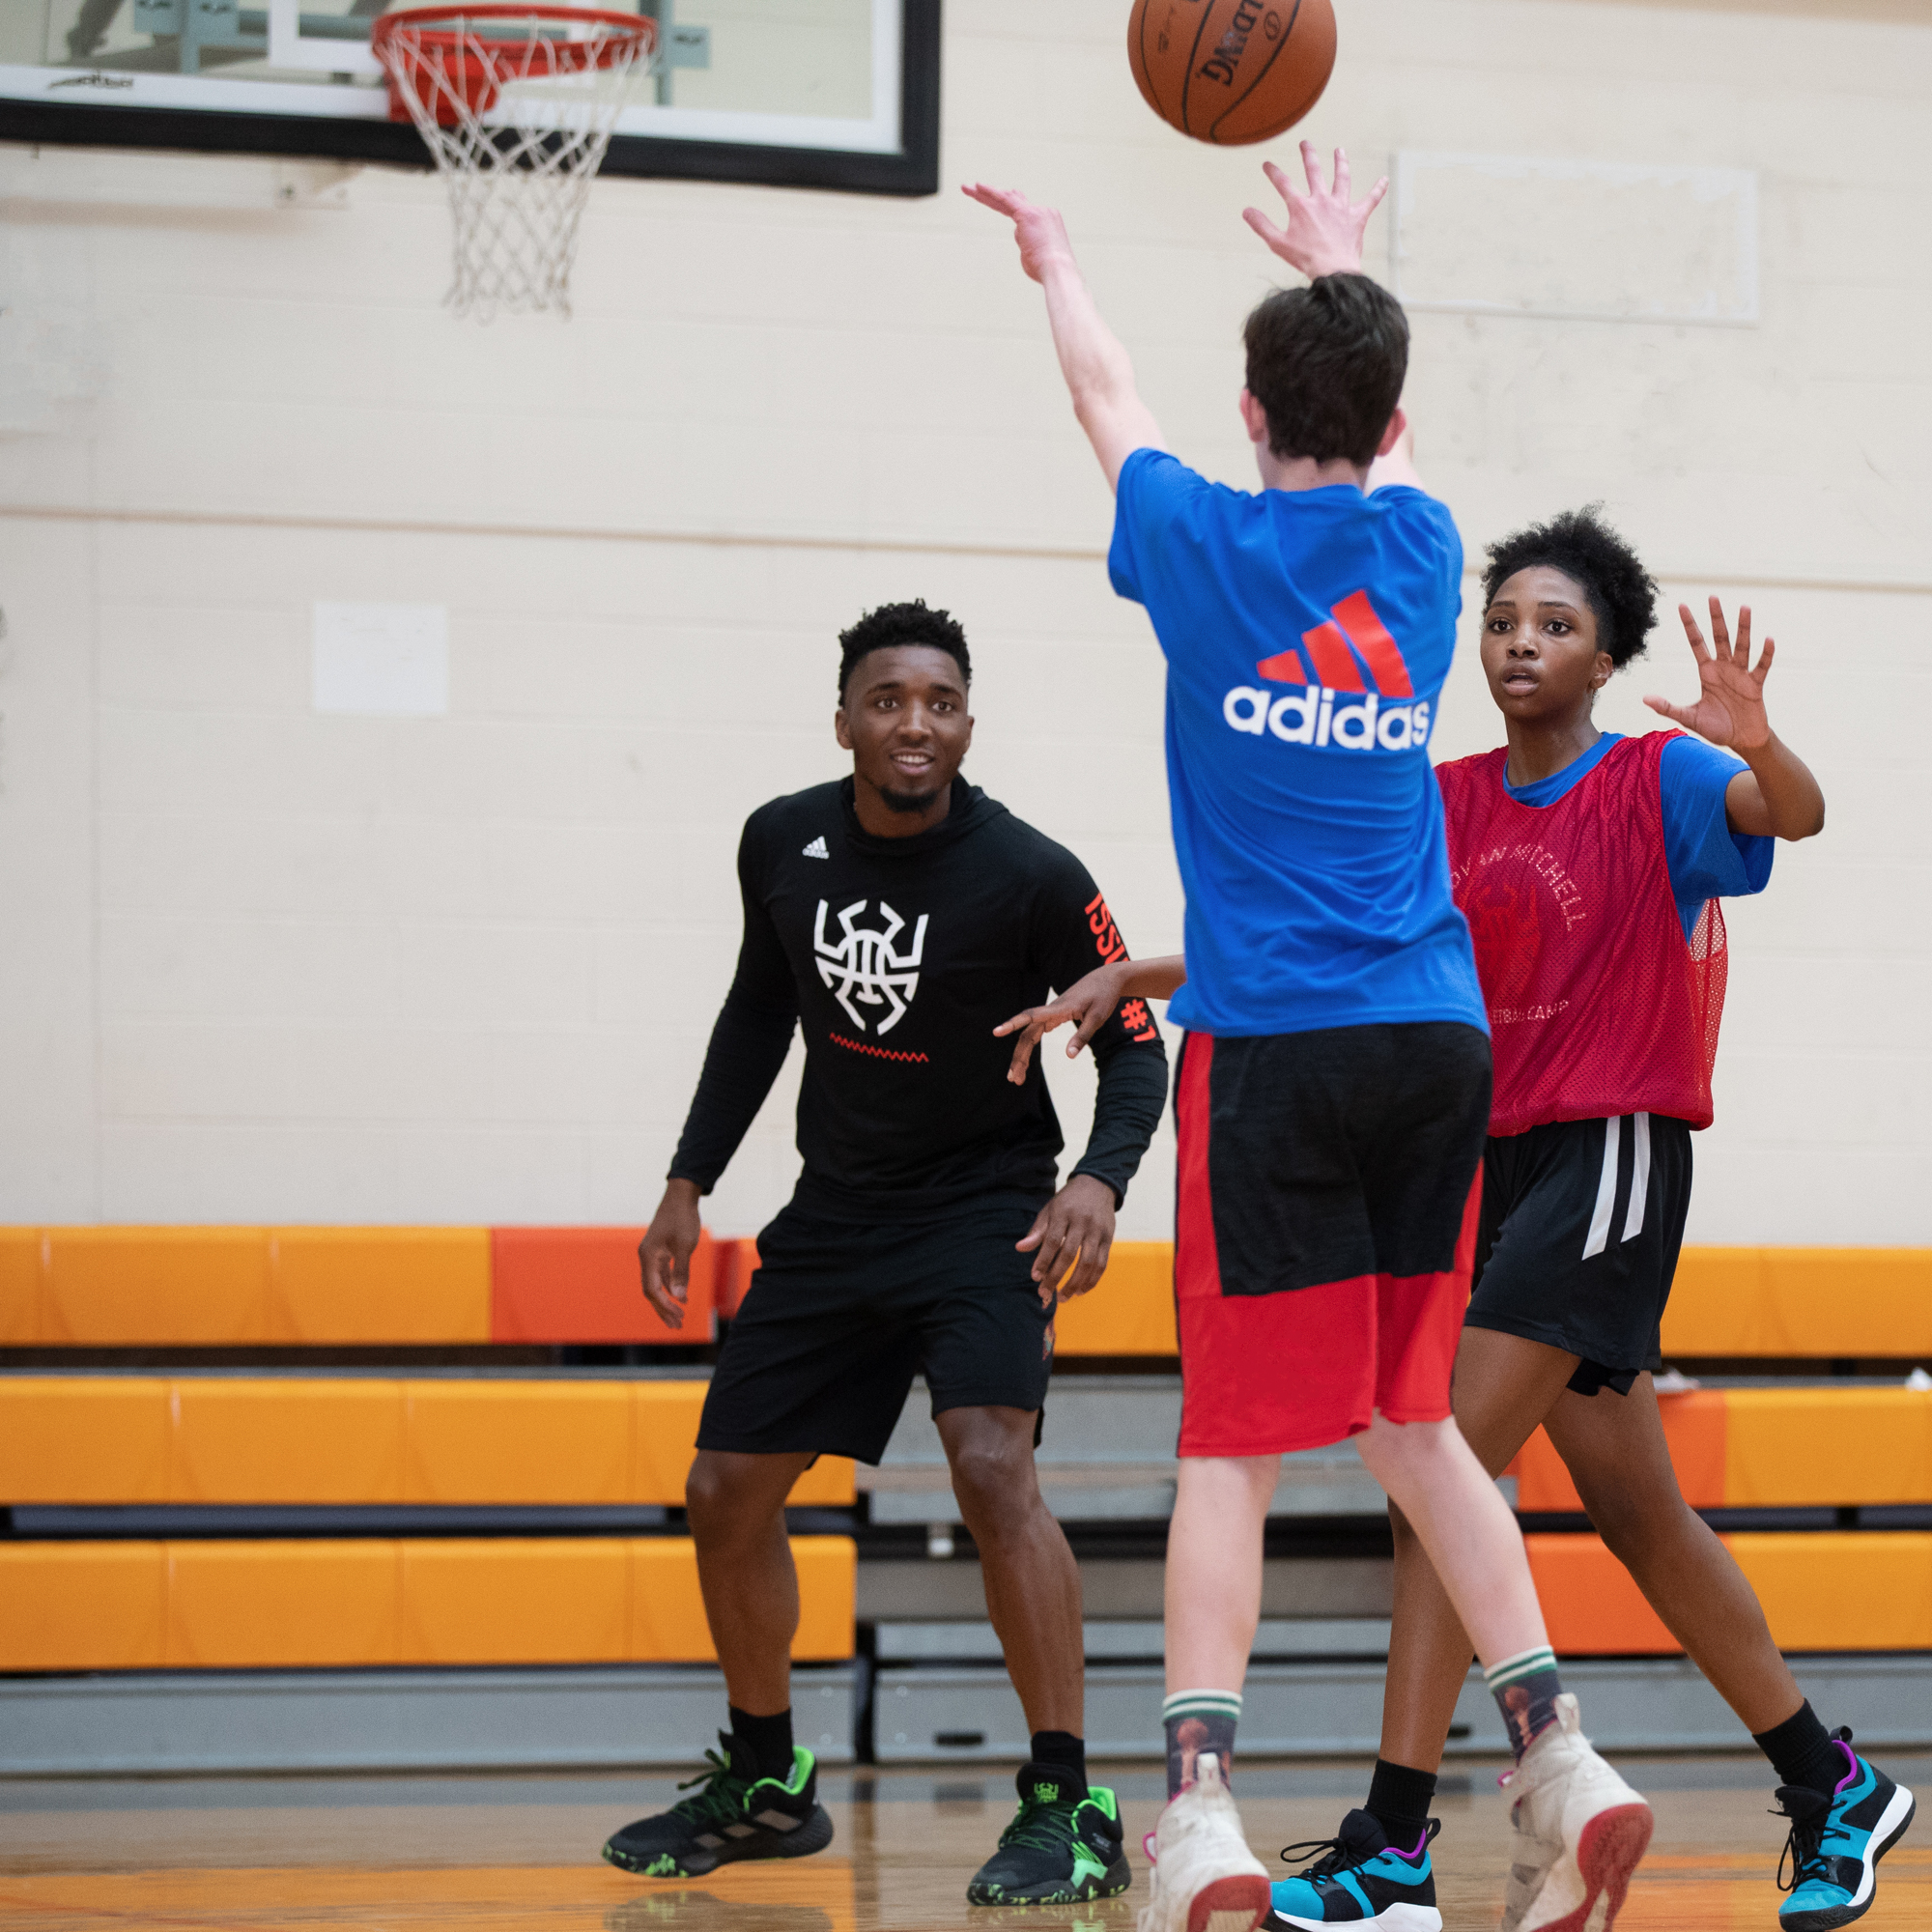 190601-donovan-mitchell-basketball-camp-grade5-9-WH-4548-c2.jpg